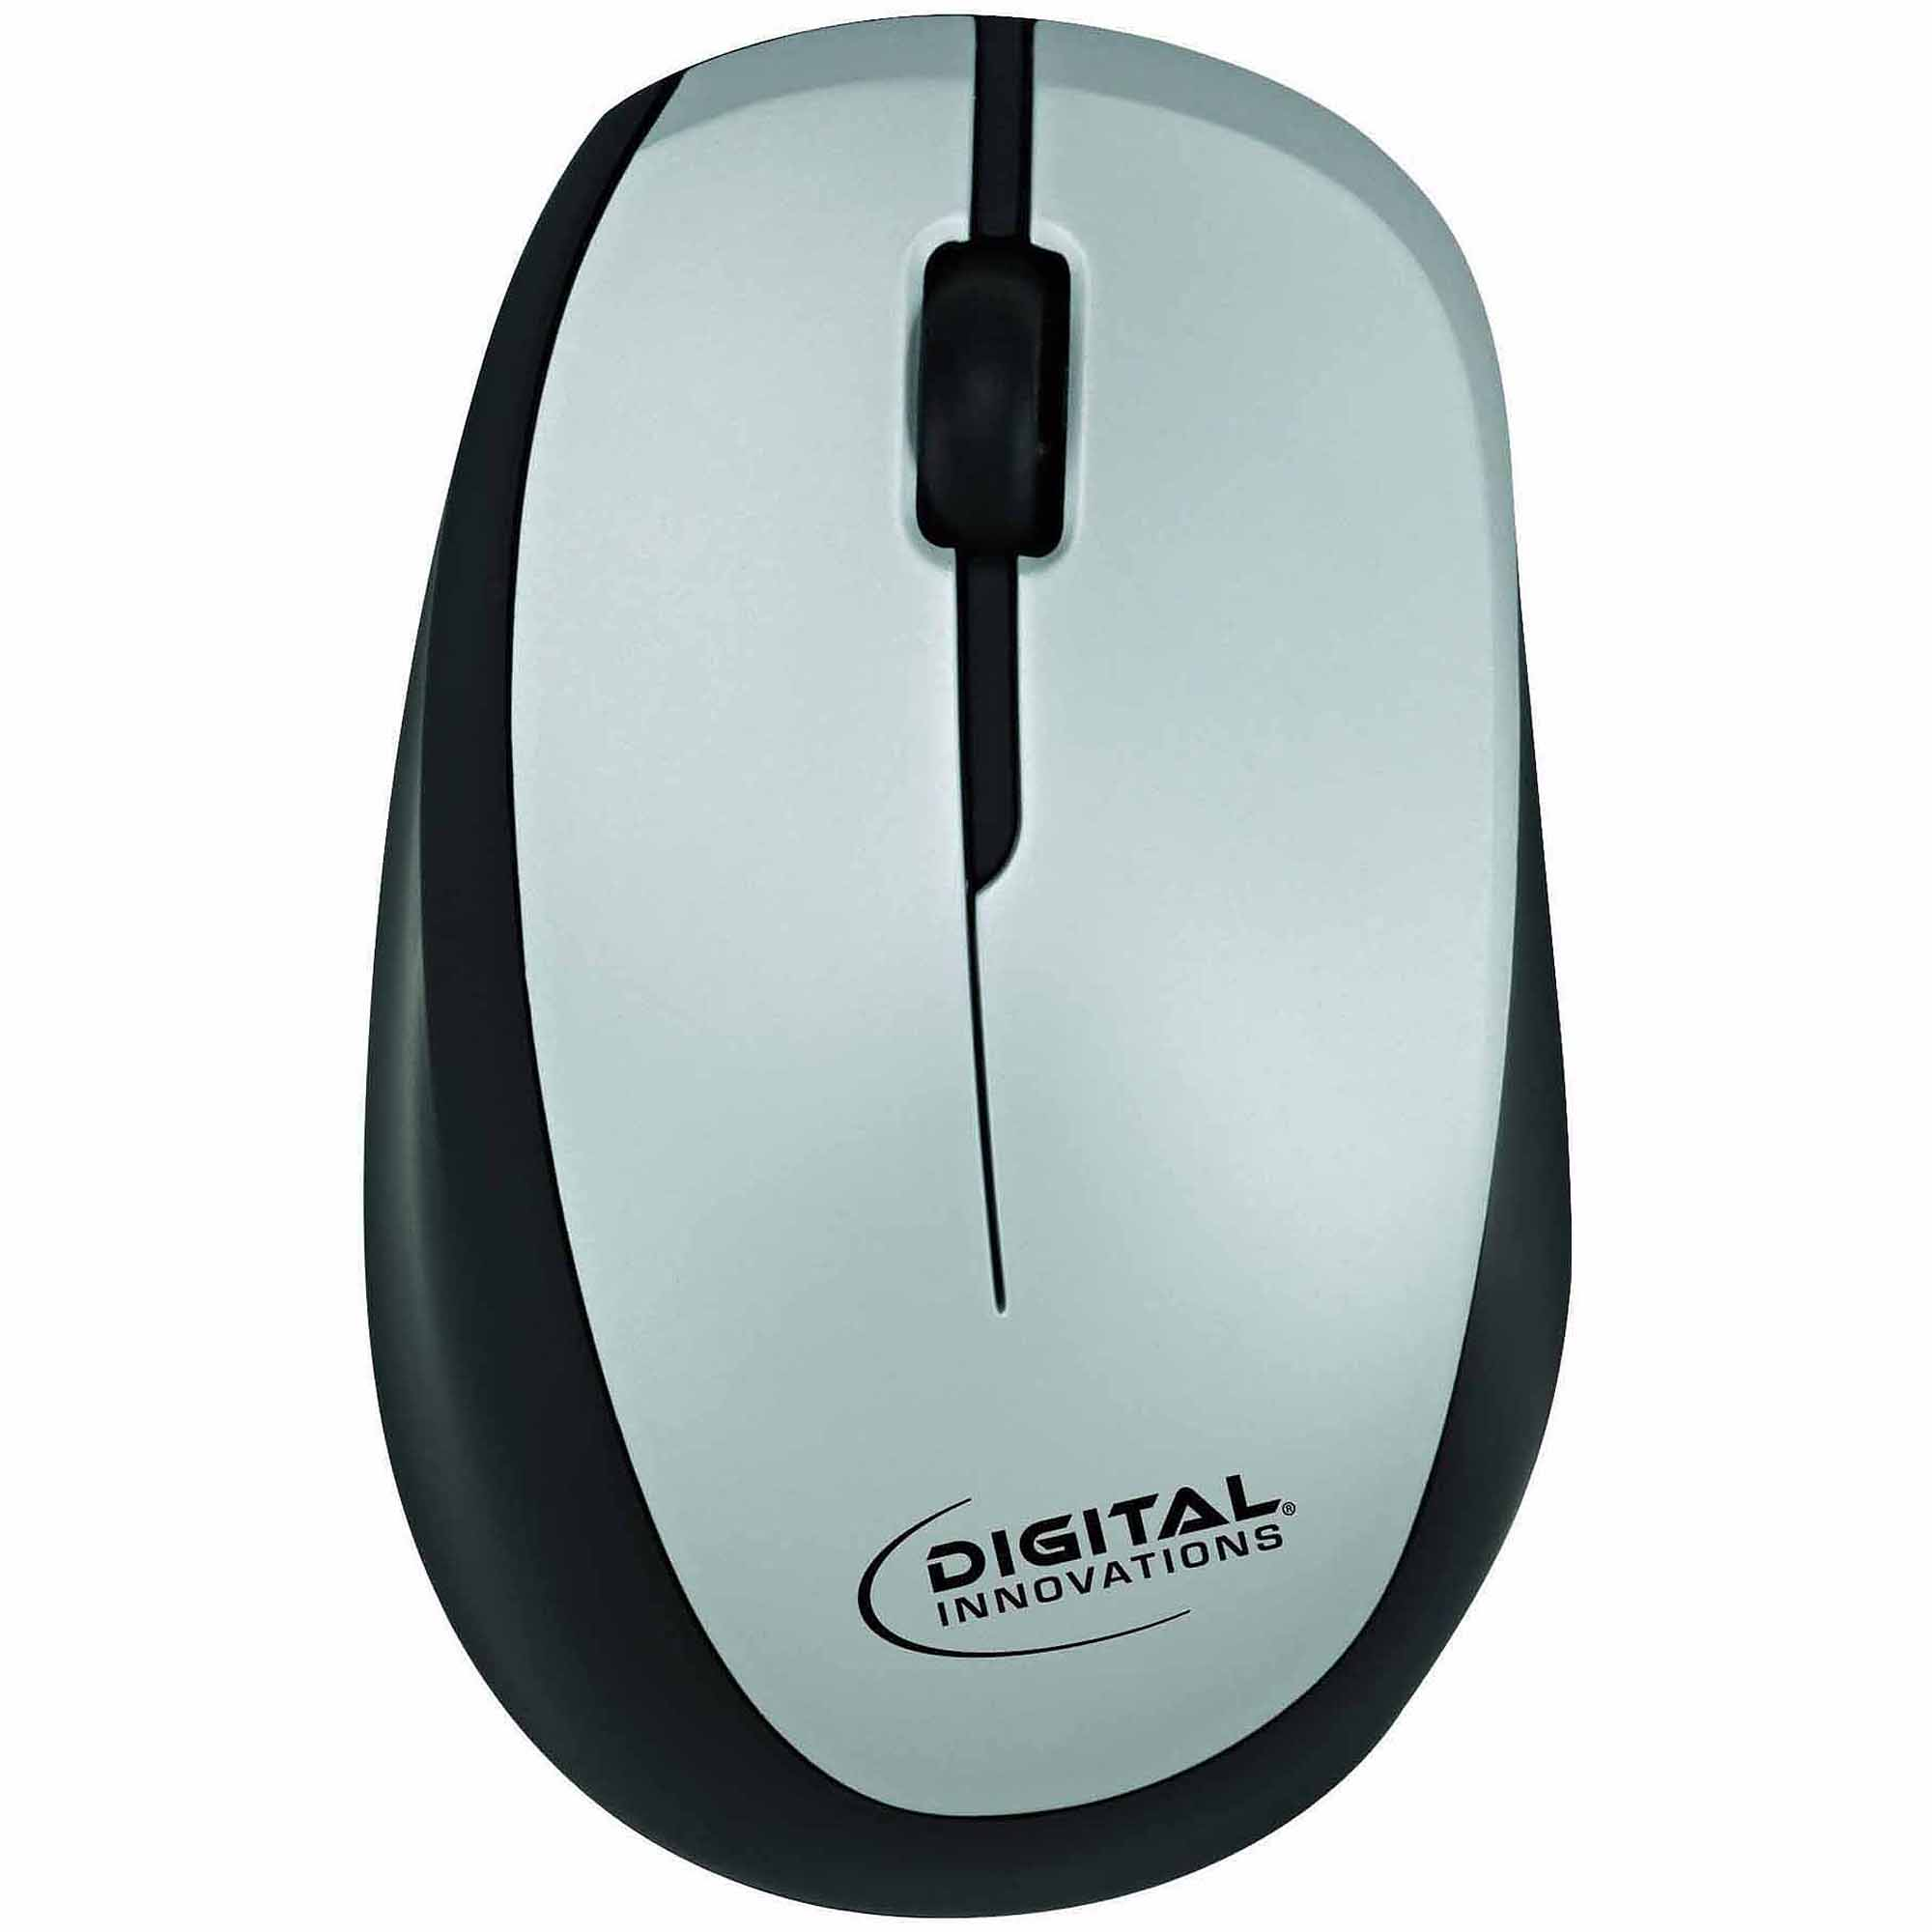 Digital Innovations EasyGlide Wireless Mouse